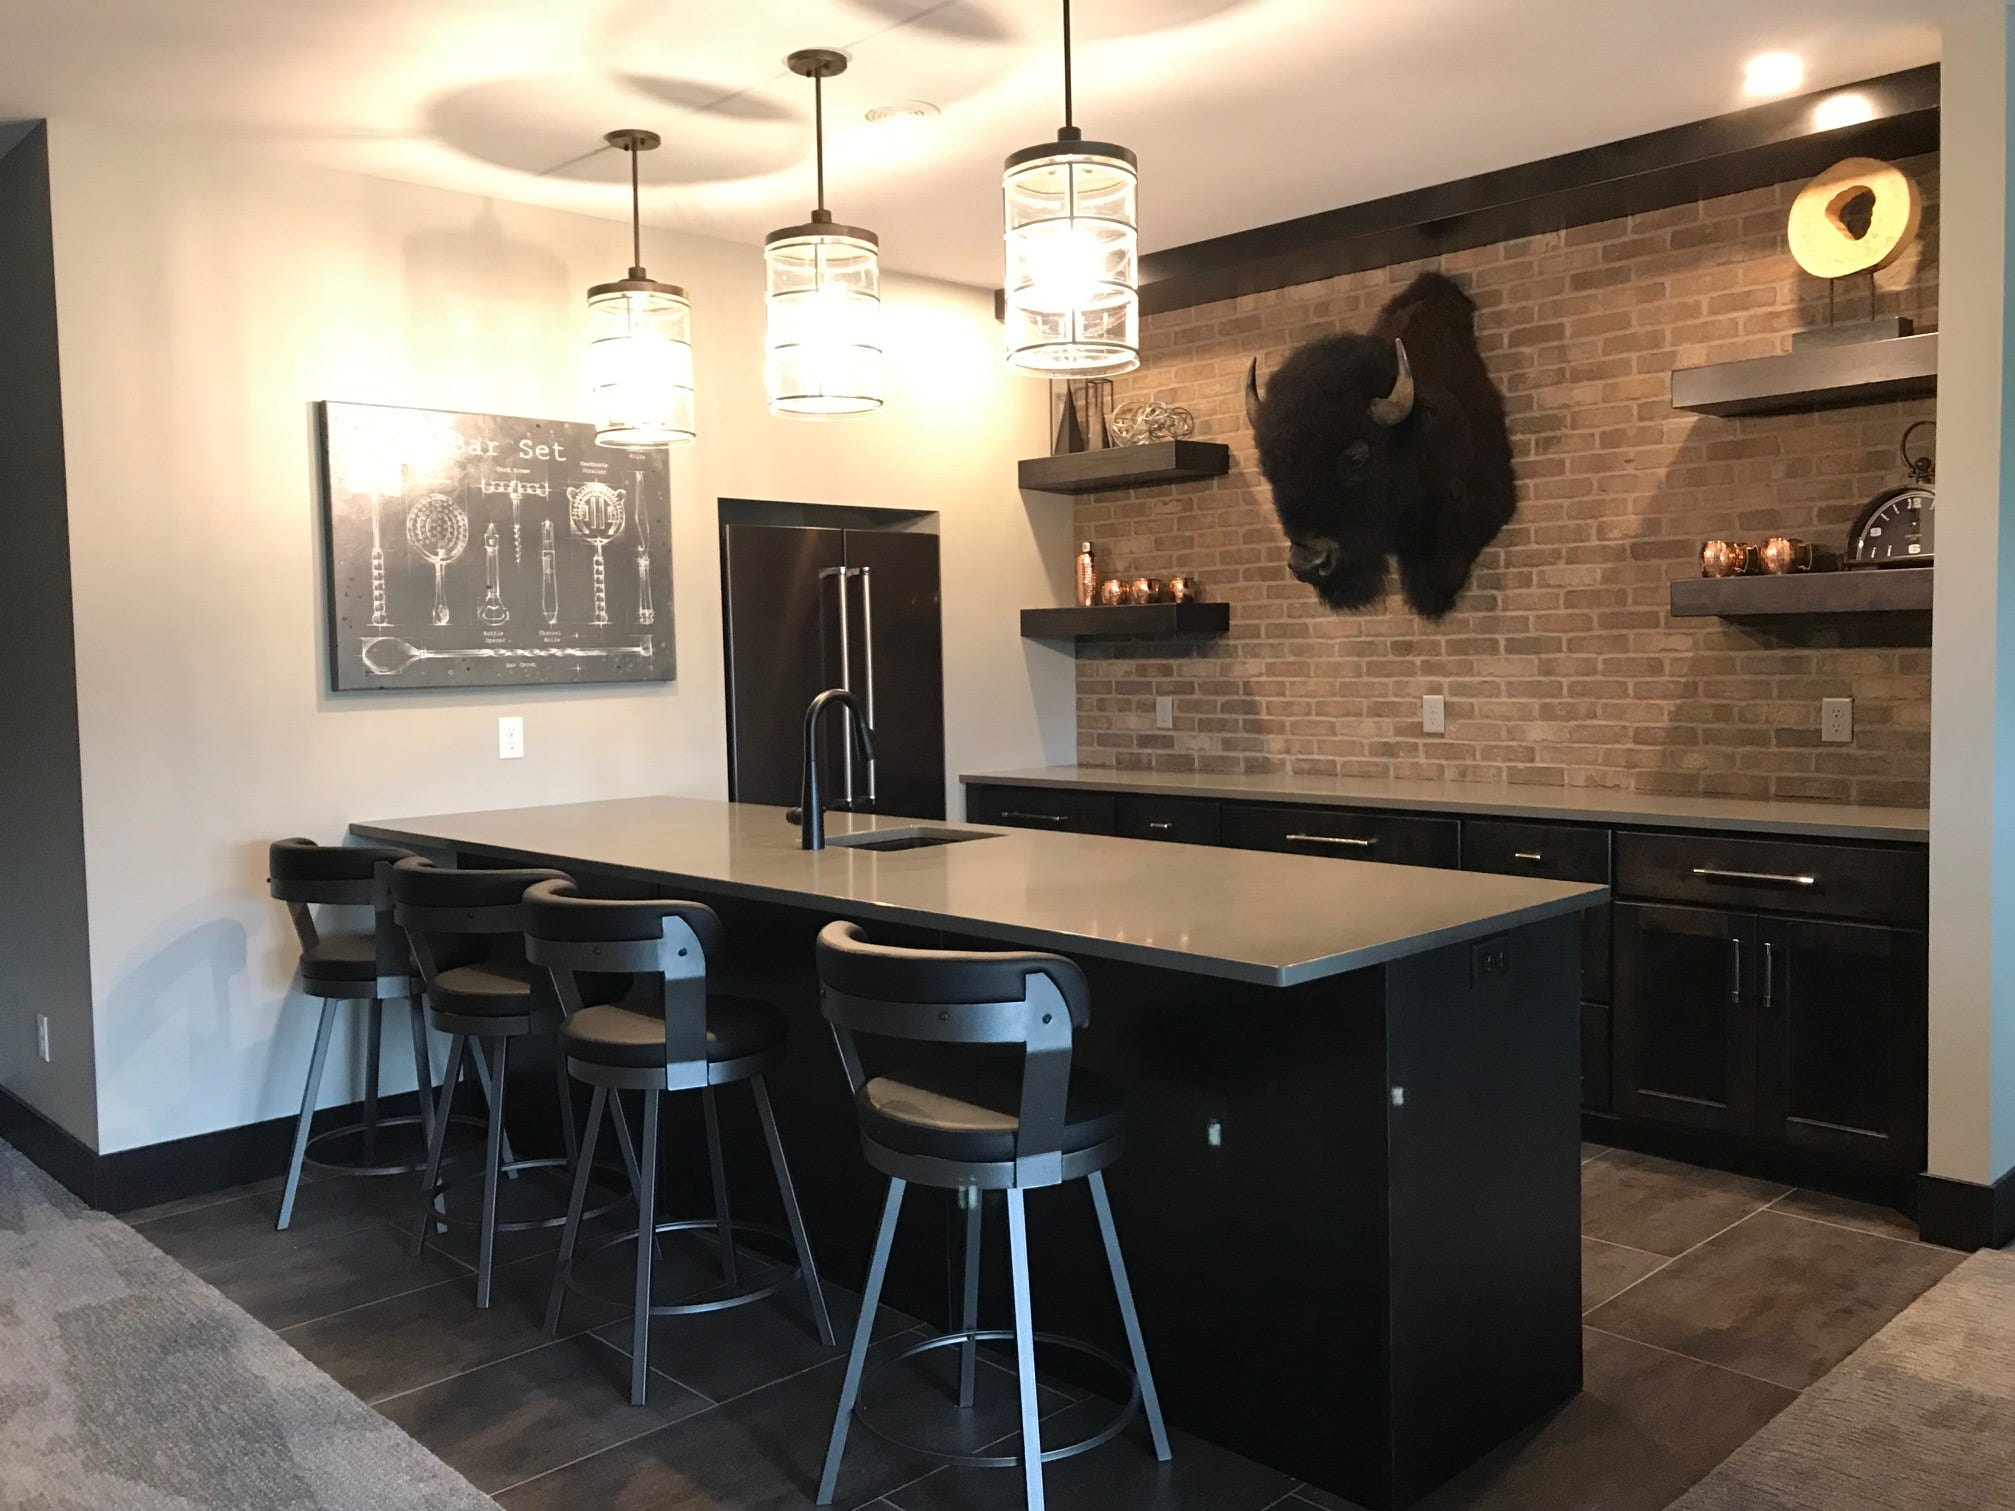 This 5,000-square-foot foot home at 404 E. Shadow Creek Laneis a feature home (No. 54) on the Sioux Empire Home Builder Association's 2019 Spring Parade of Homes. The 5-bed, 4-1/2 bath homewas built by Choice Builders Inc.